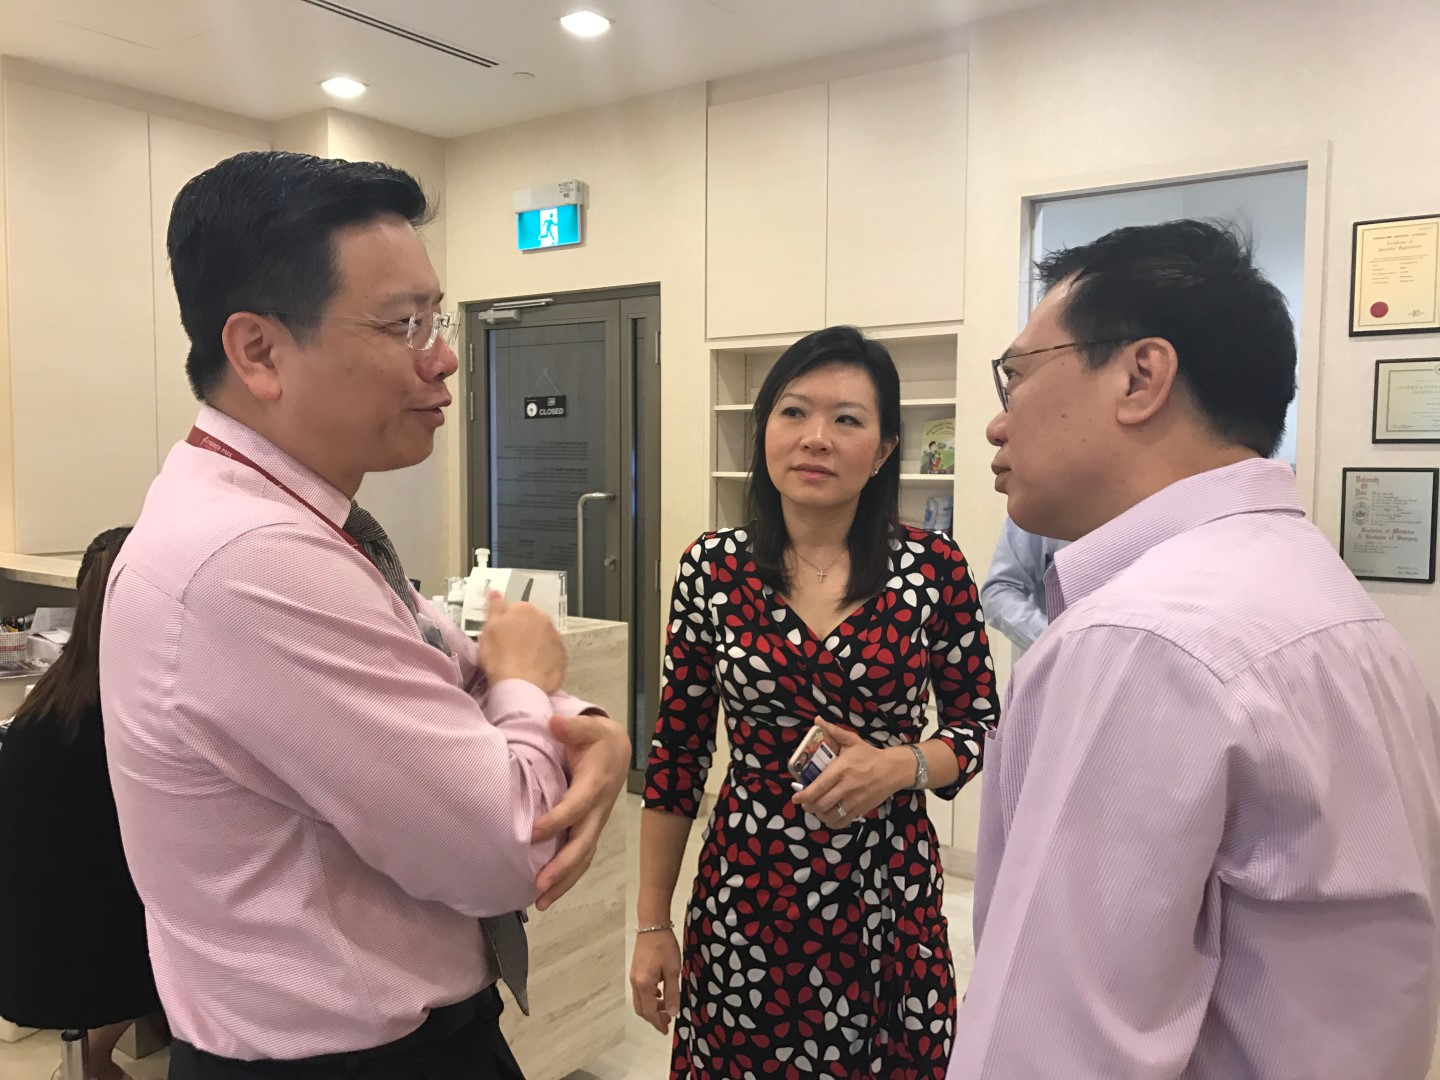 (L-R) Dr Au Eong Kah Guan, Dr Joy Chan and Mr Jimmy Giam from Vision Lab Eyewear having a chat following Dr Chan's teaching session at International Eye Cataract Retina Centre.